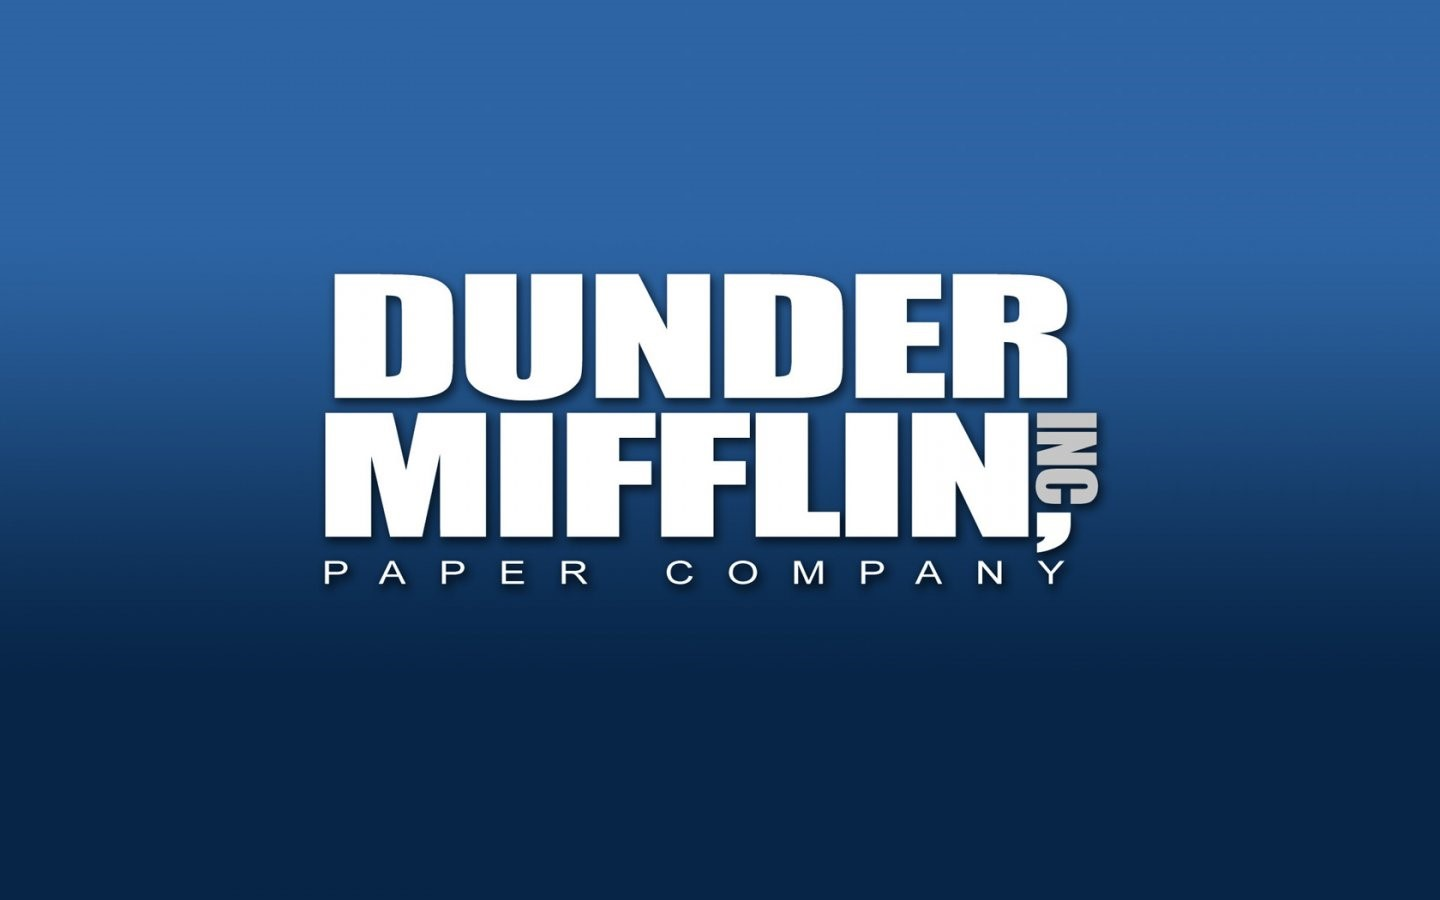 dunder mifflin wallpaper